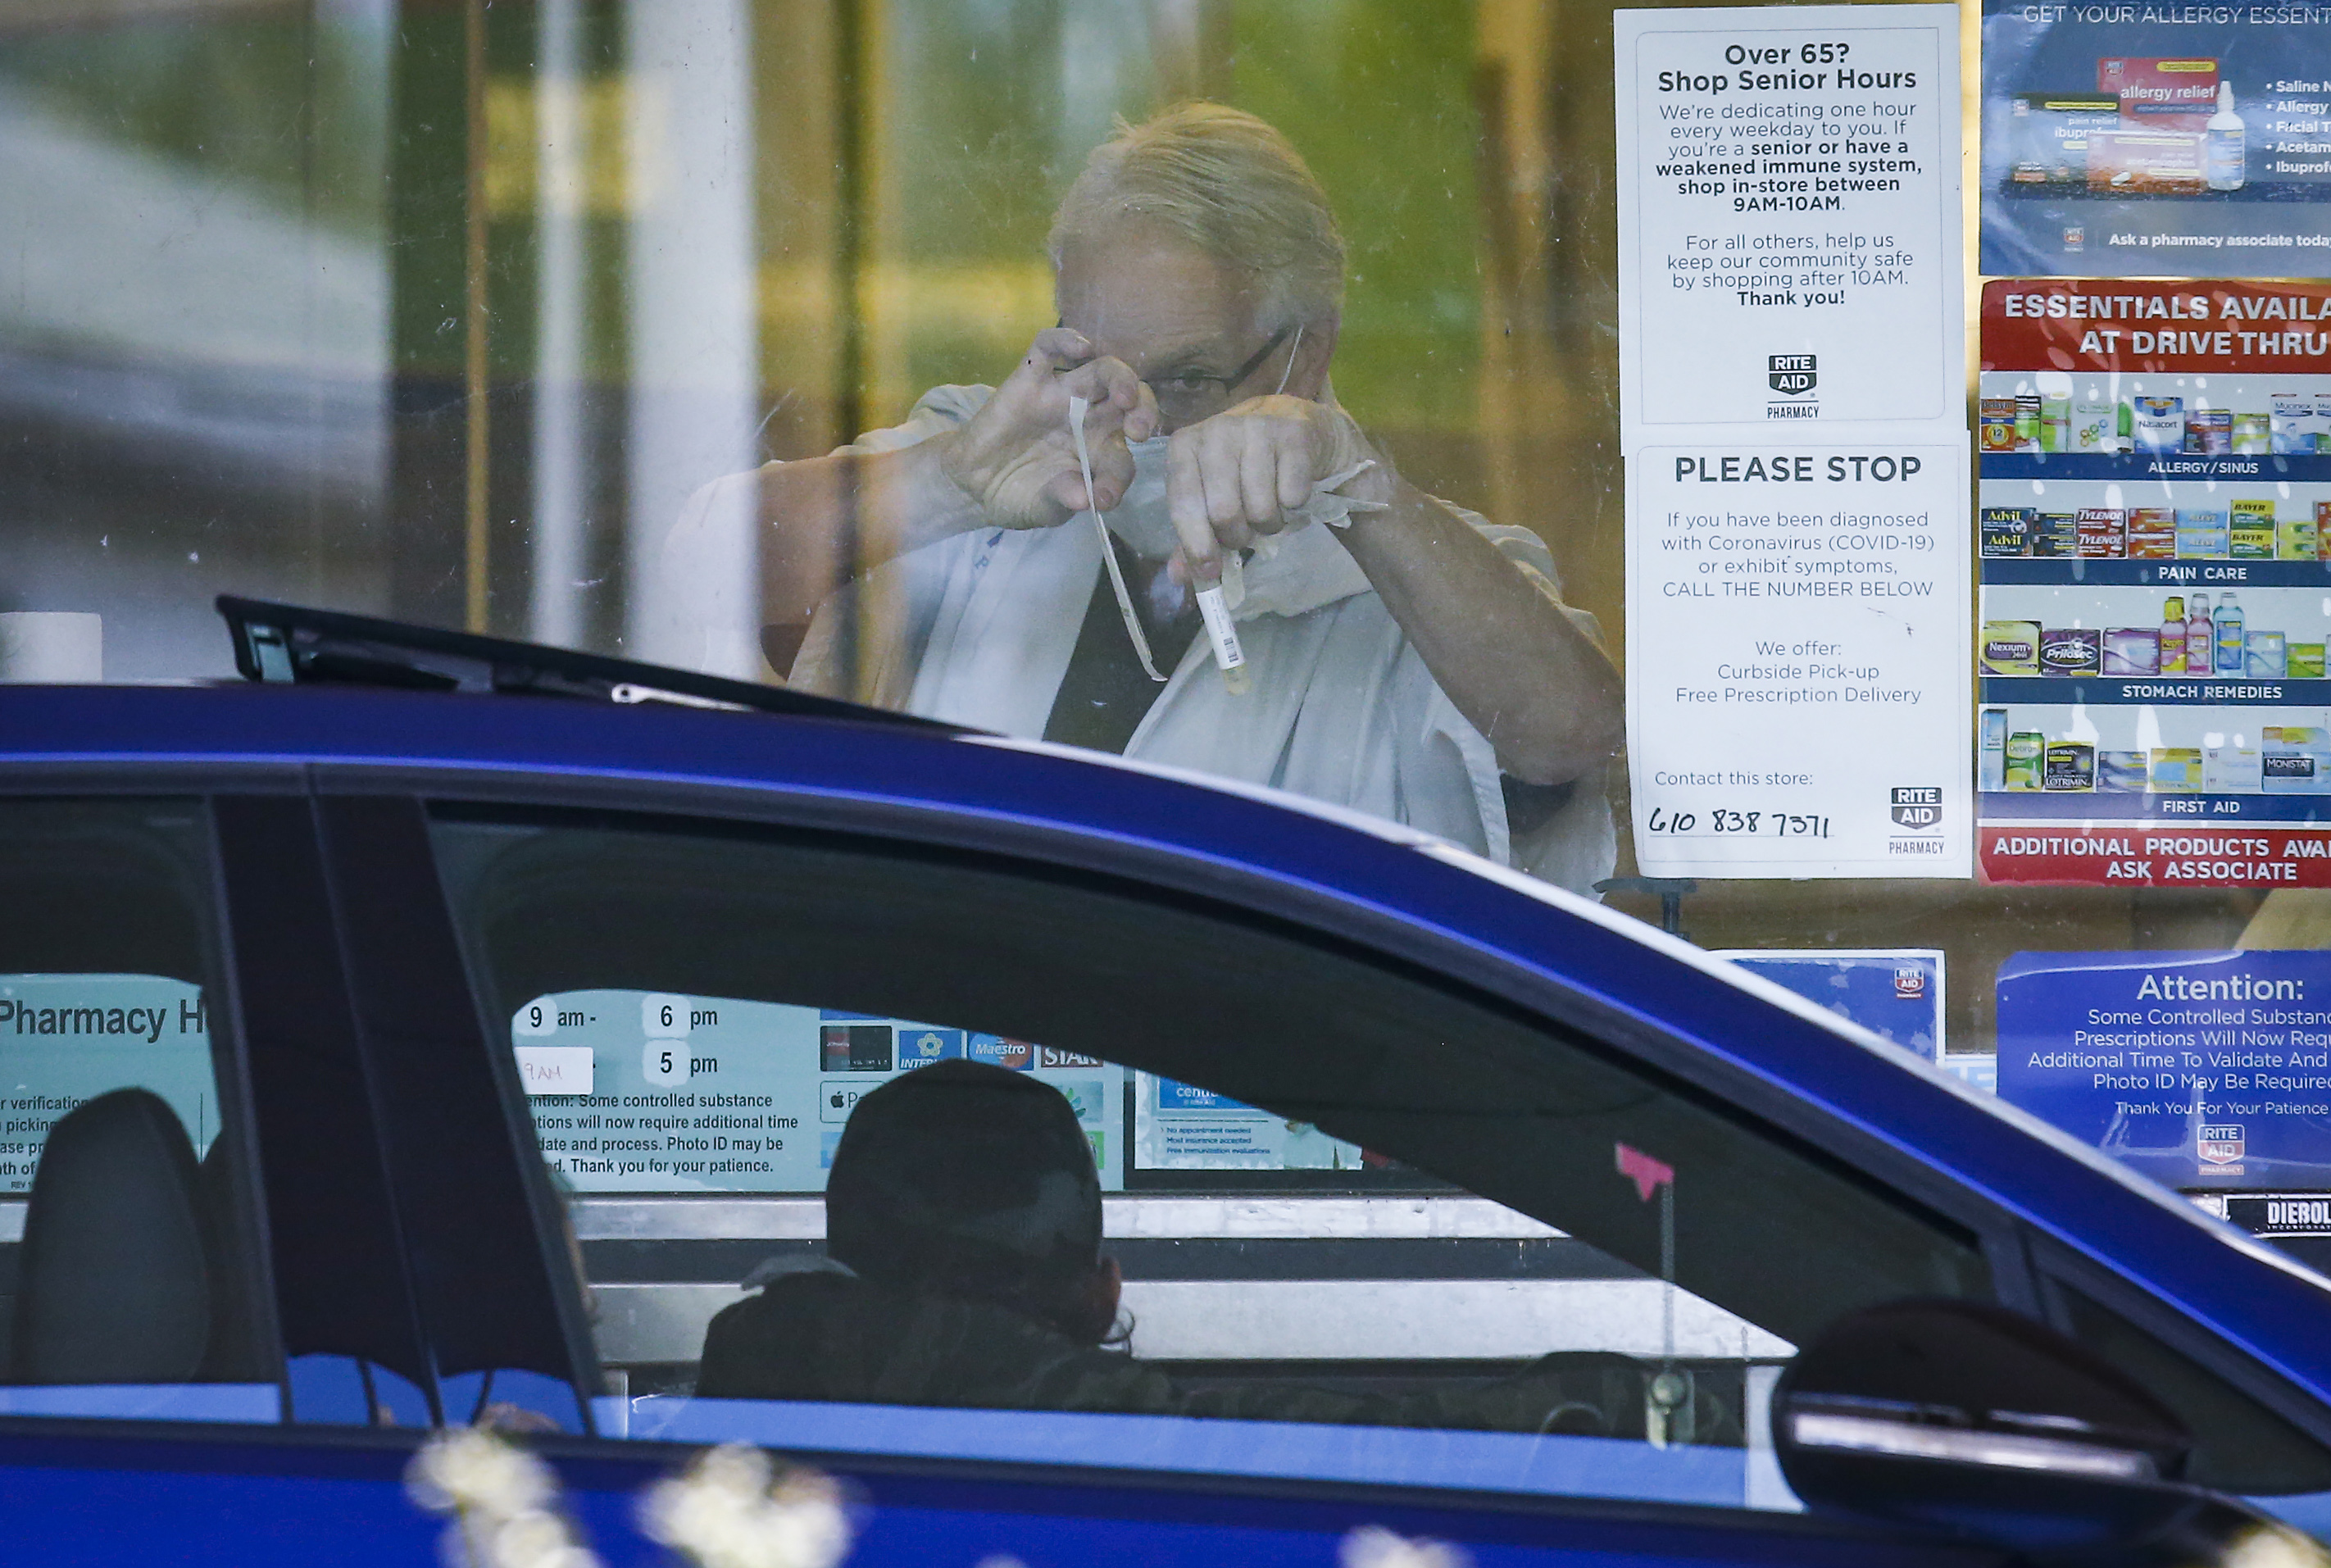 Rite Aid Now Offering Drive Thru Covid 19 Testing In The Lehigh Valley Photos Lehighvalleylive Com